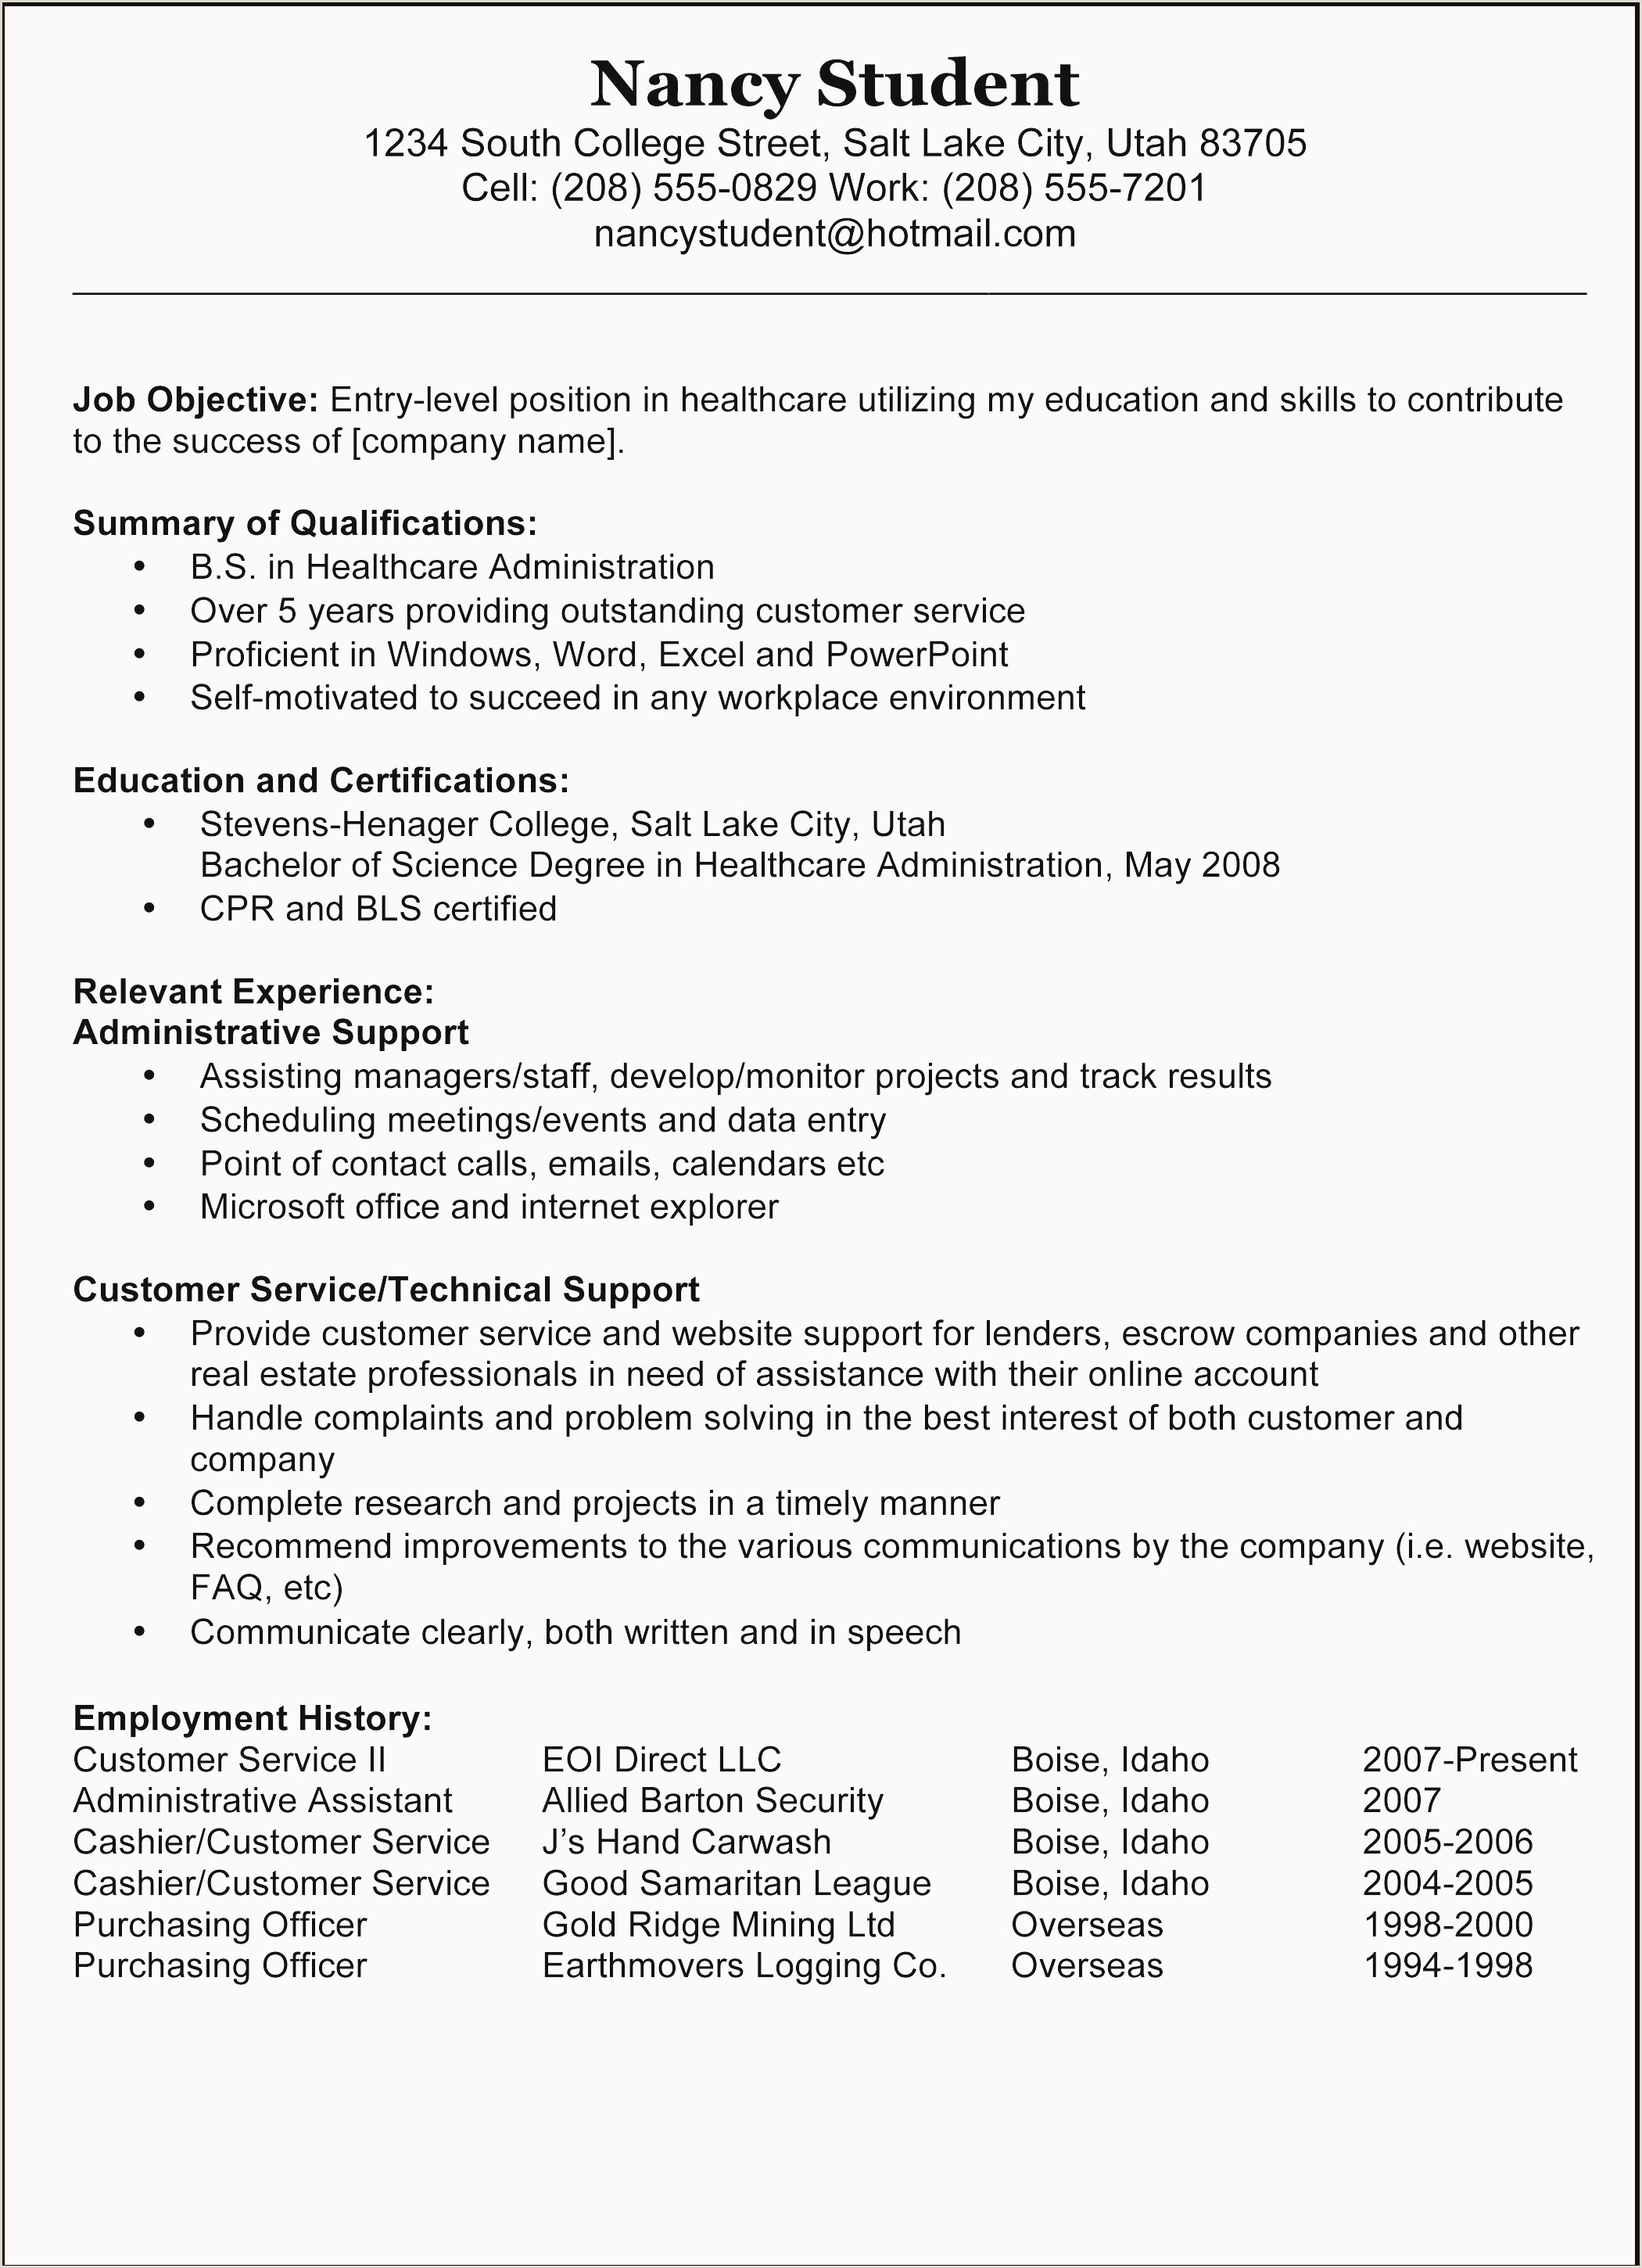 Sample Resume for Child Care Educator Early Childhood Education Resume Objective Unique Child Care